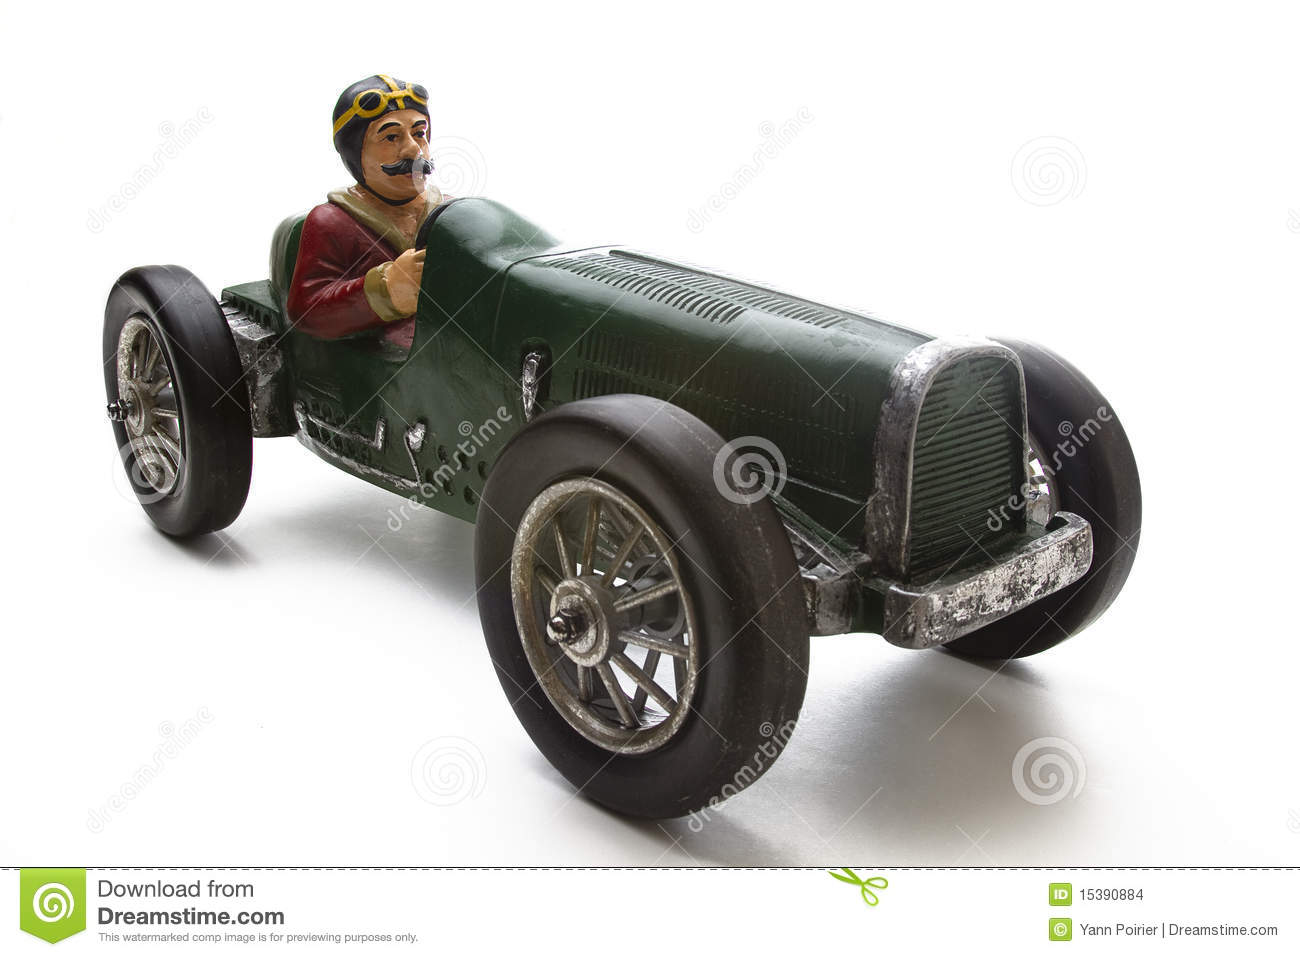 14 524 Vintage Race Car Driver Photos Free Royalty Free Stock Photos From Dreamstime